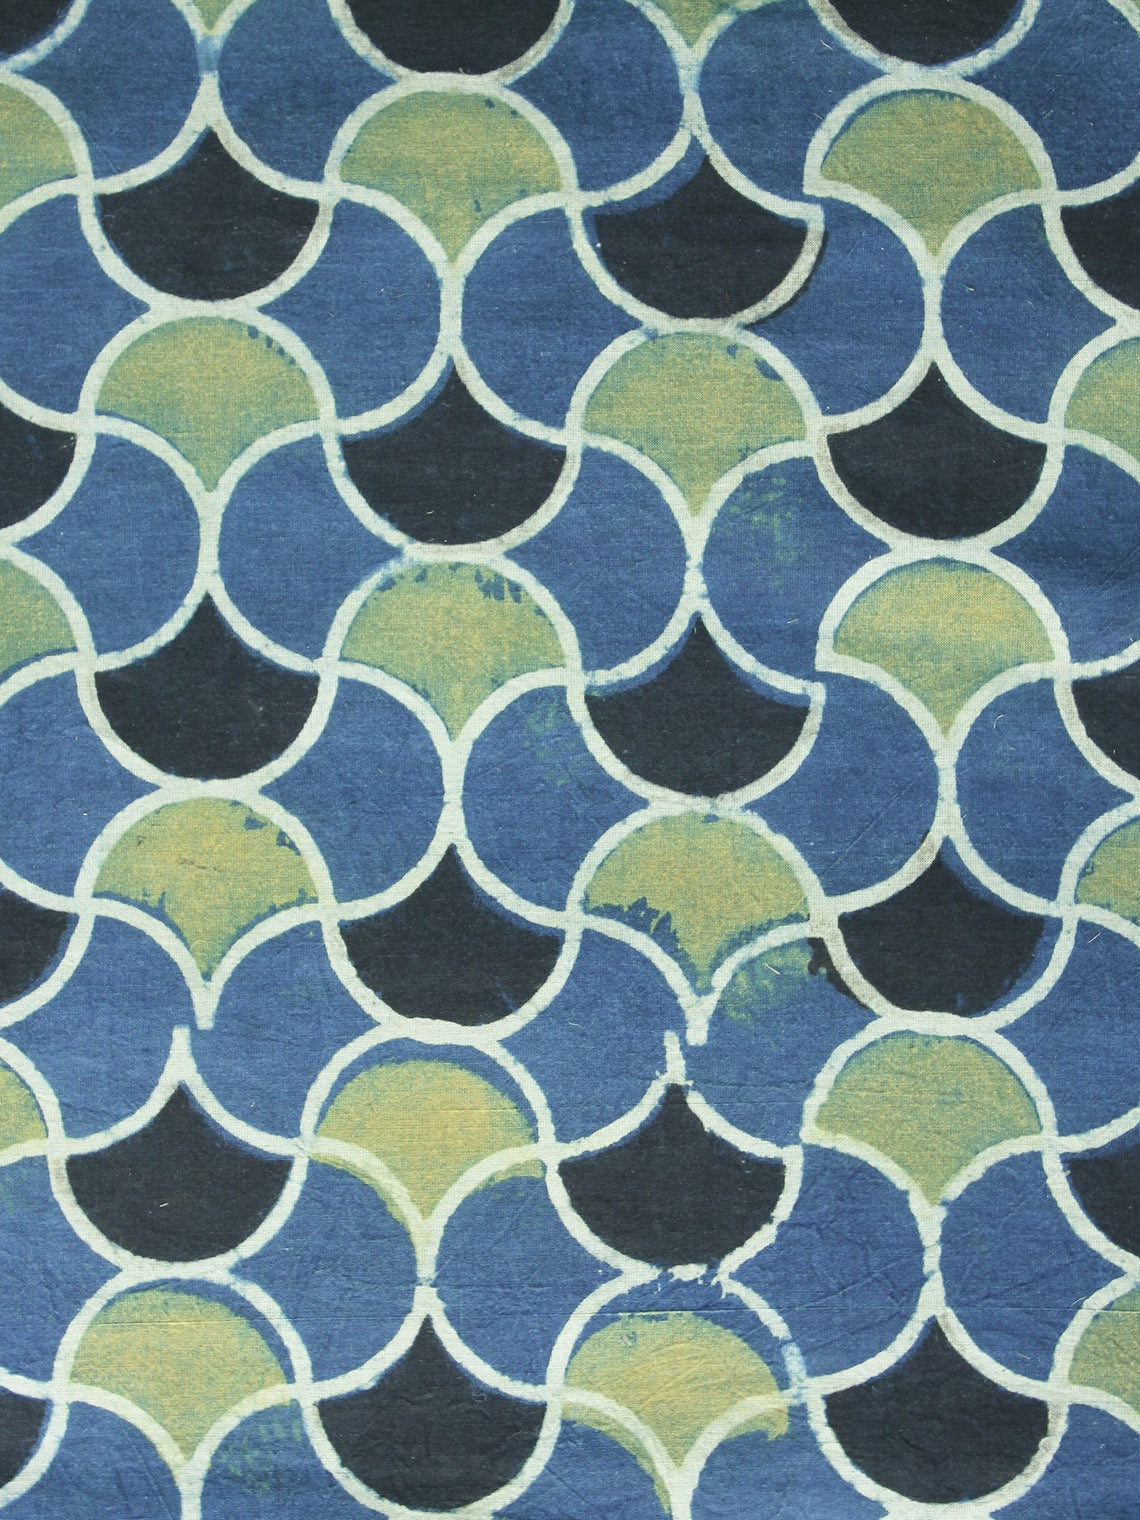 Indigo Olive green Black  Ajrakh Printed Cotton Fabric Per Meter - F003F1215